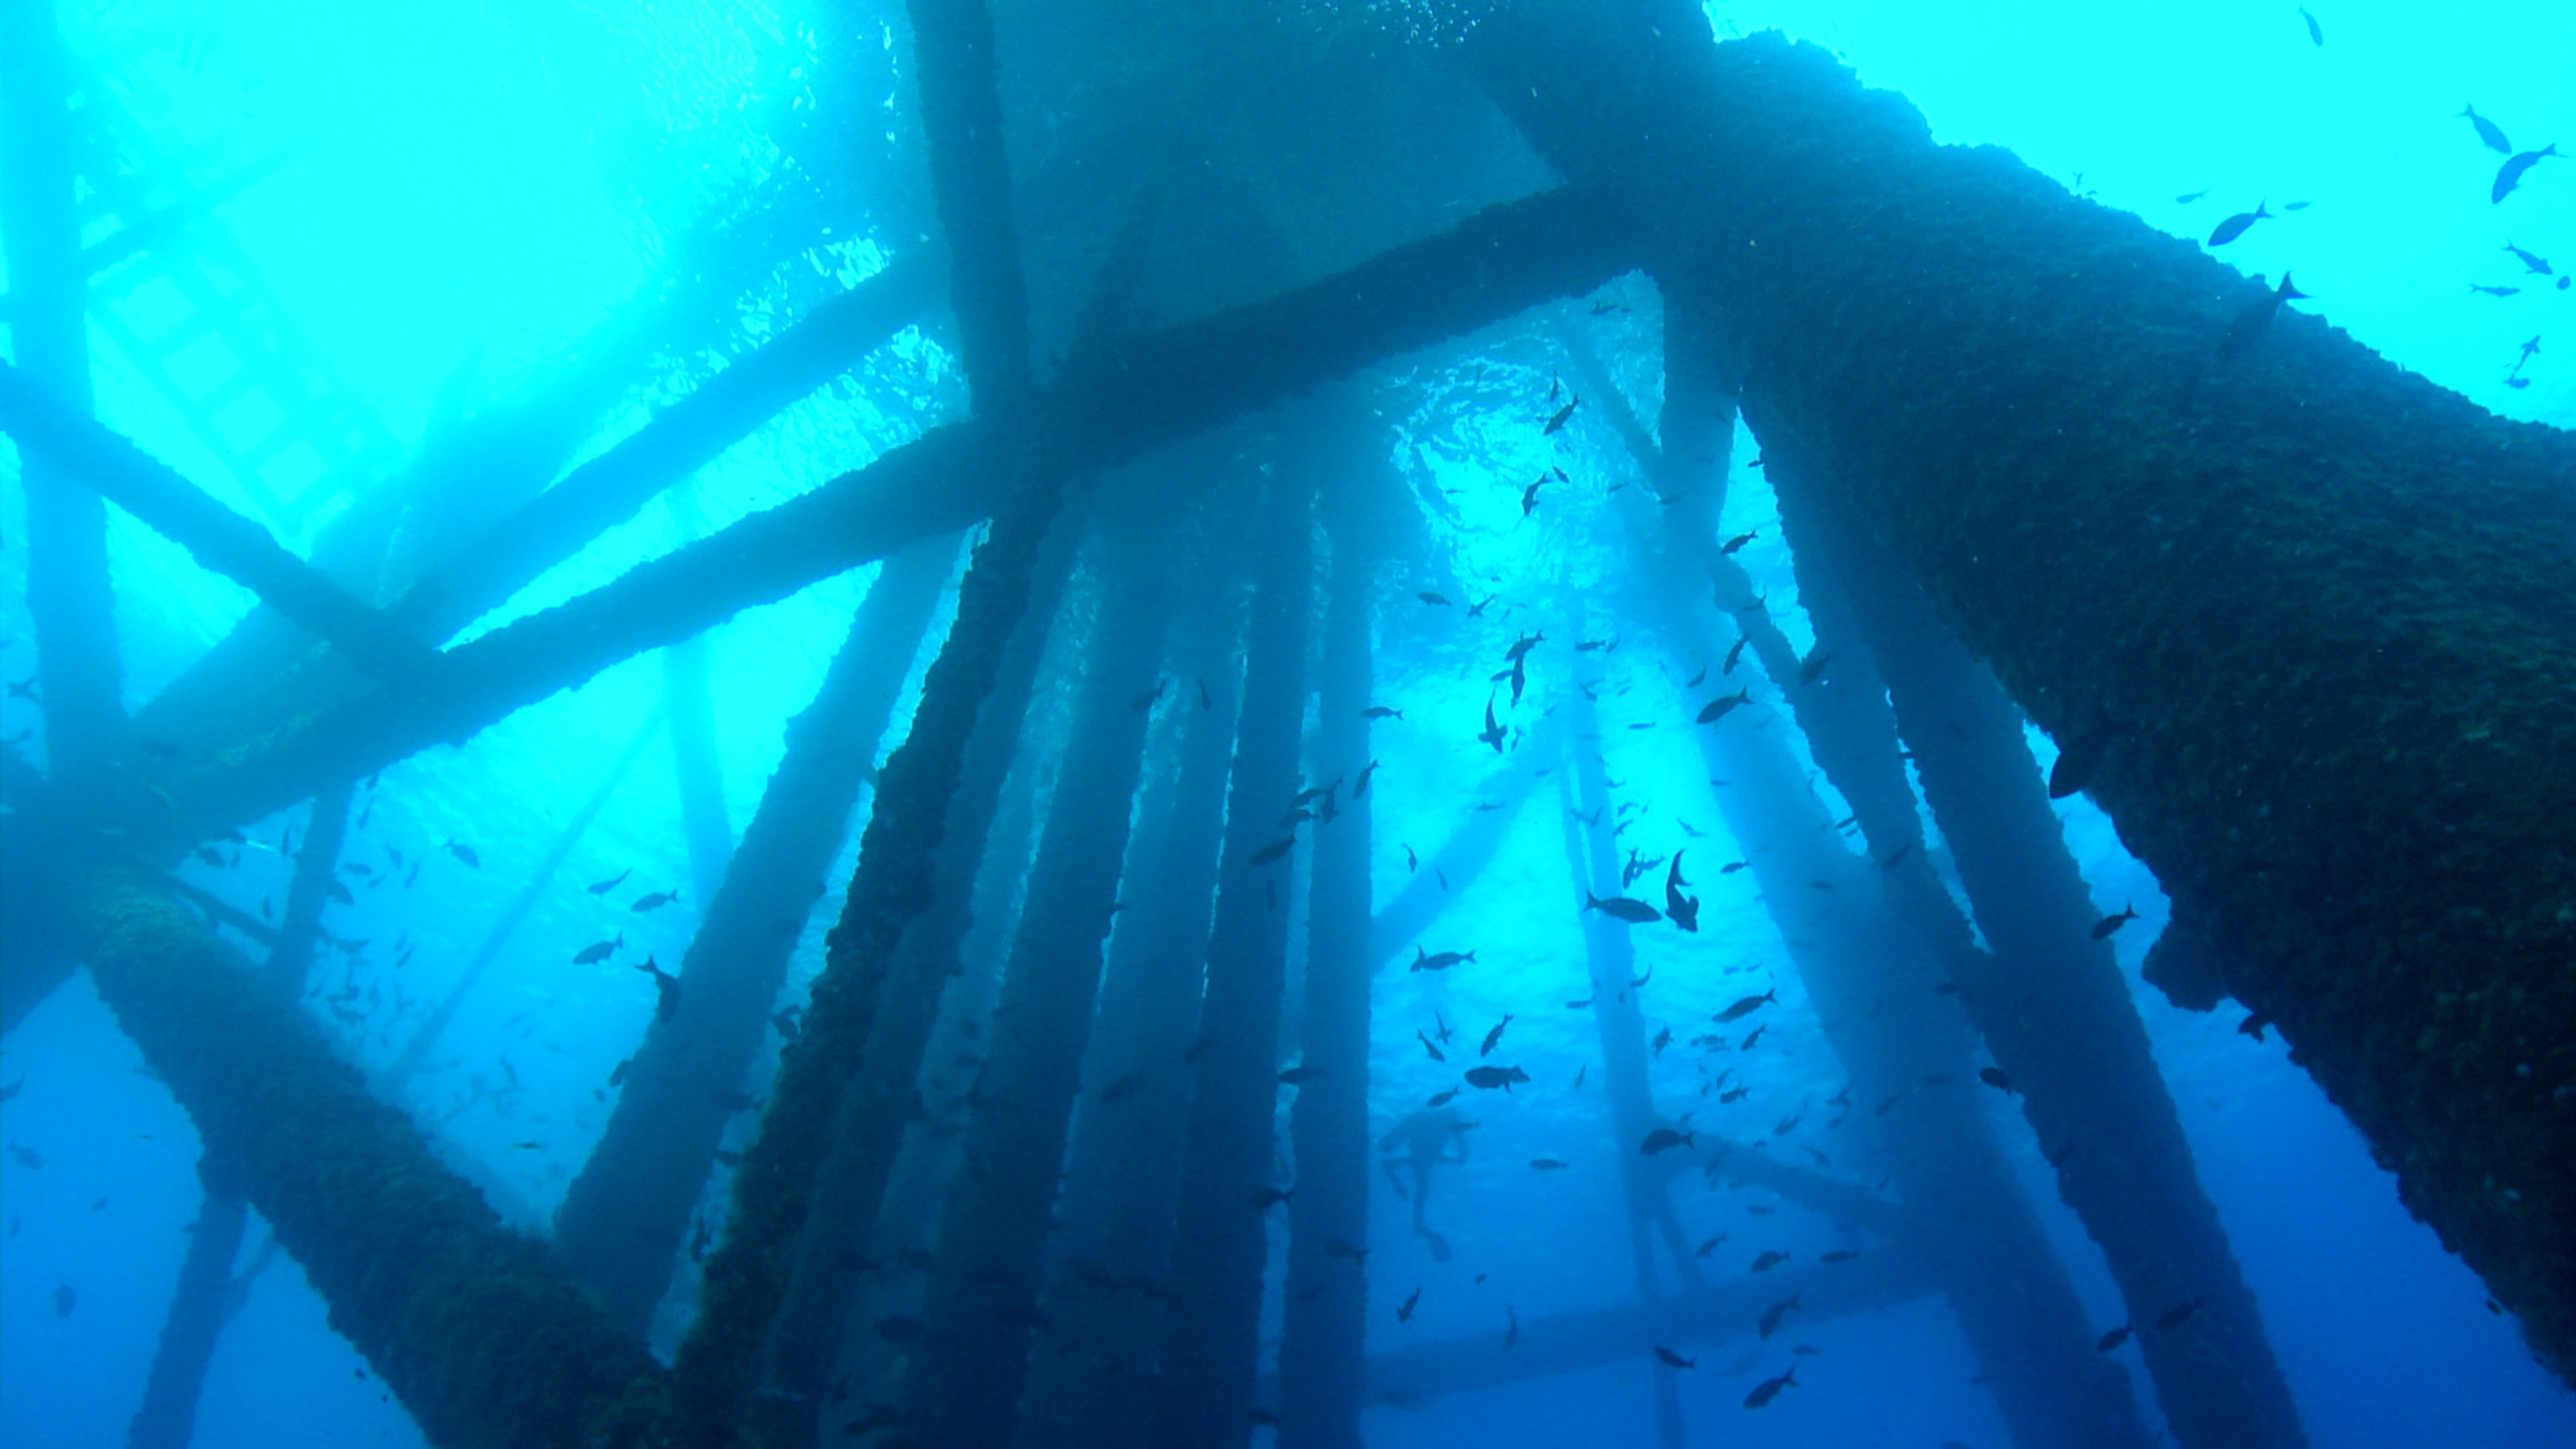 Underwater oil rig gas platforms